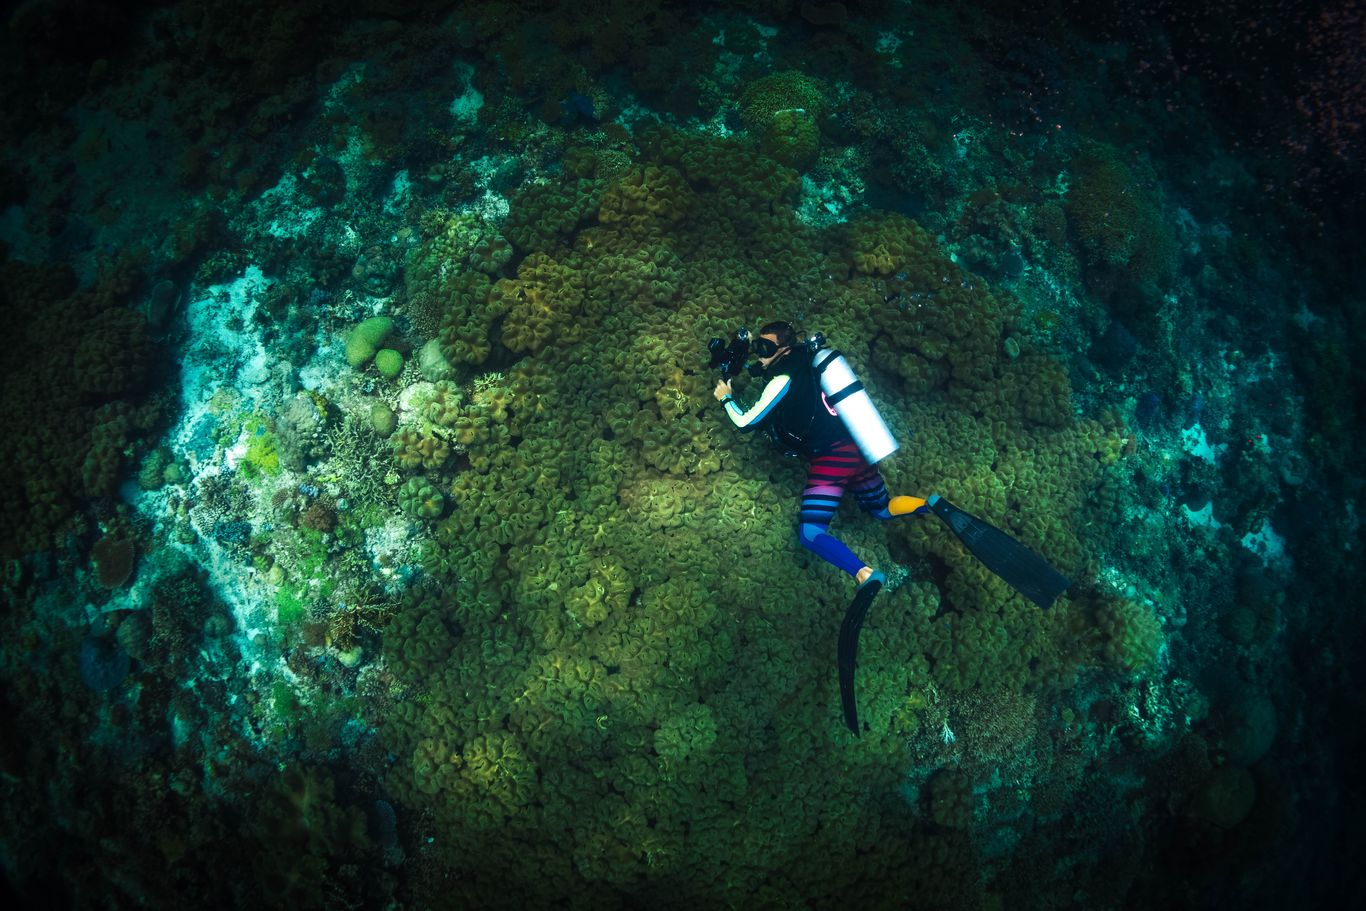 Scuba diver with a camera swimming over coral reefs